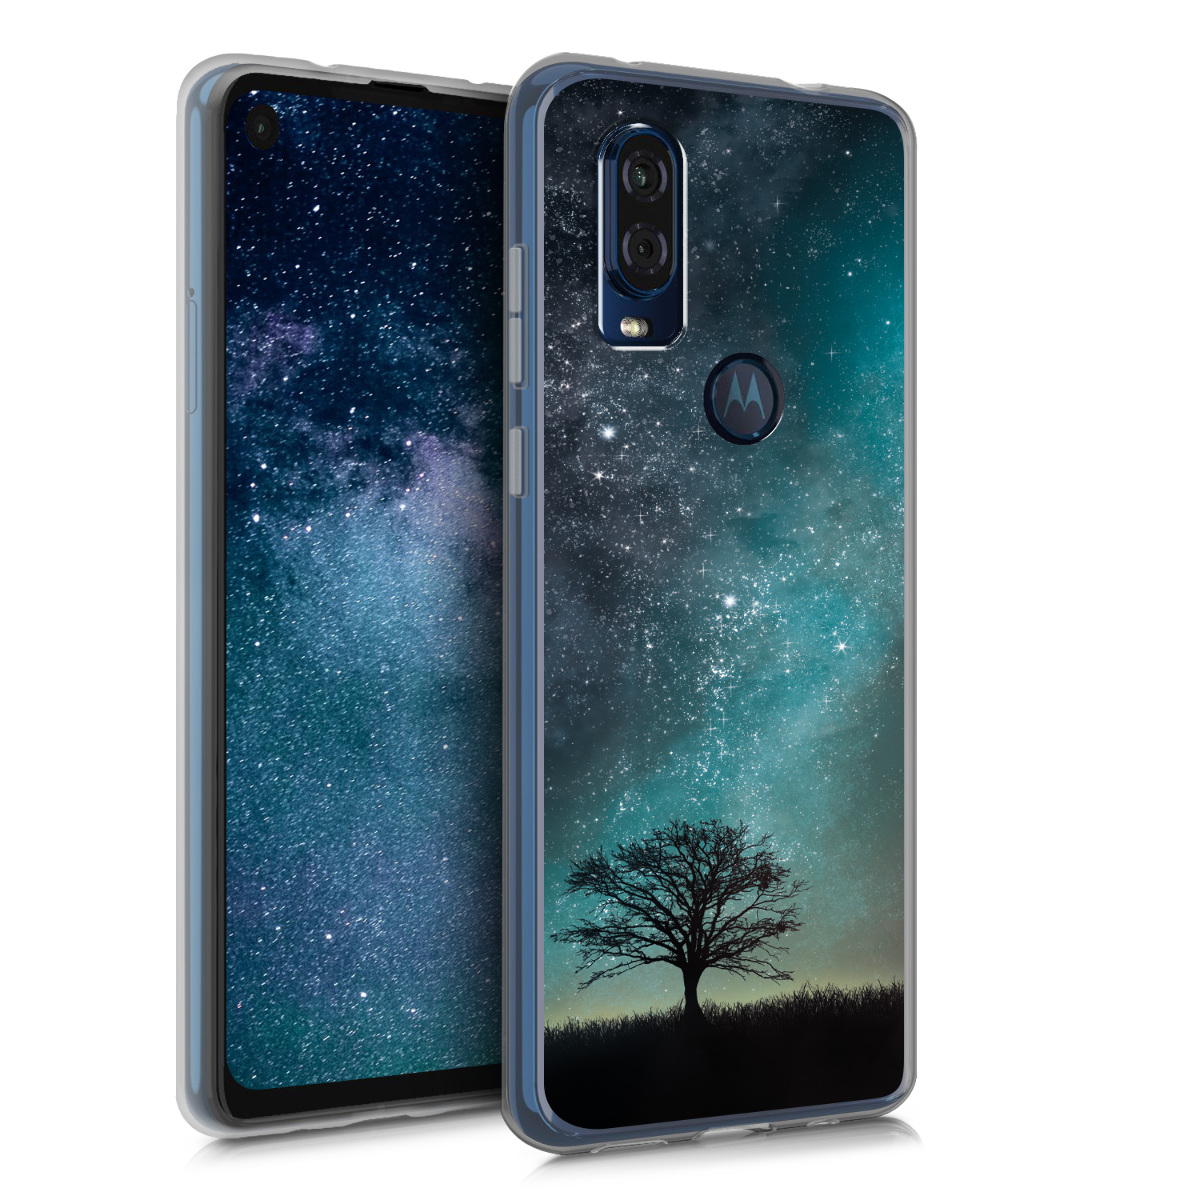 KW Θήκη Σιλικόνης Motorola One Vision - Blue / Grey / Black (48845.03)